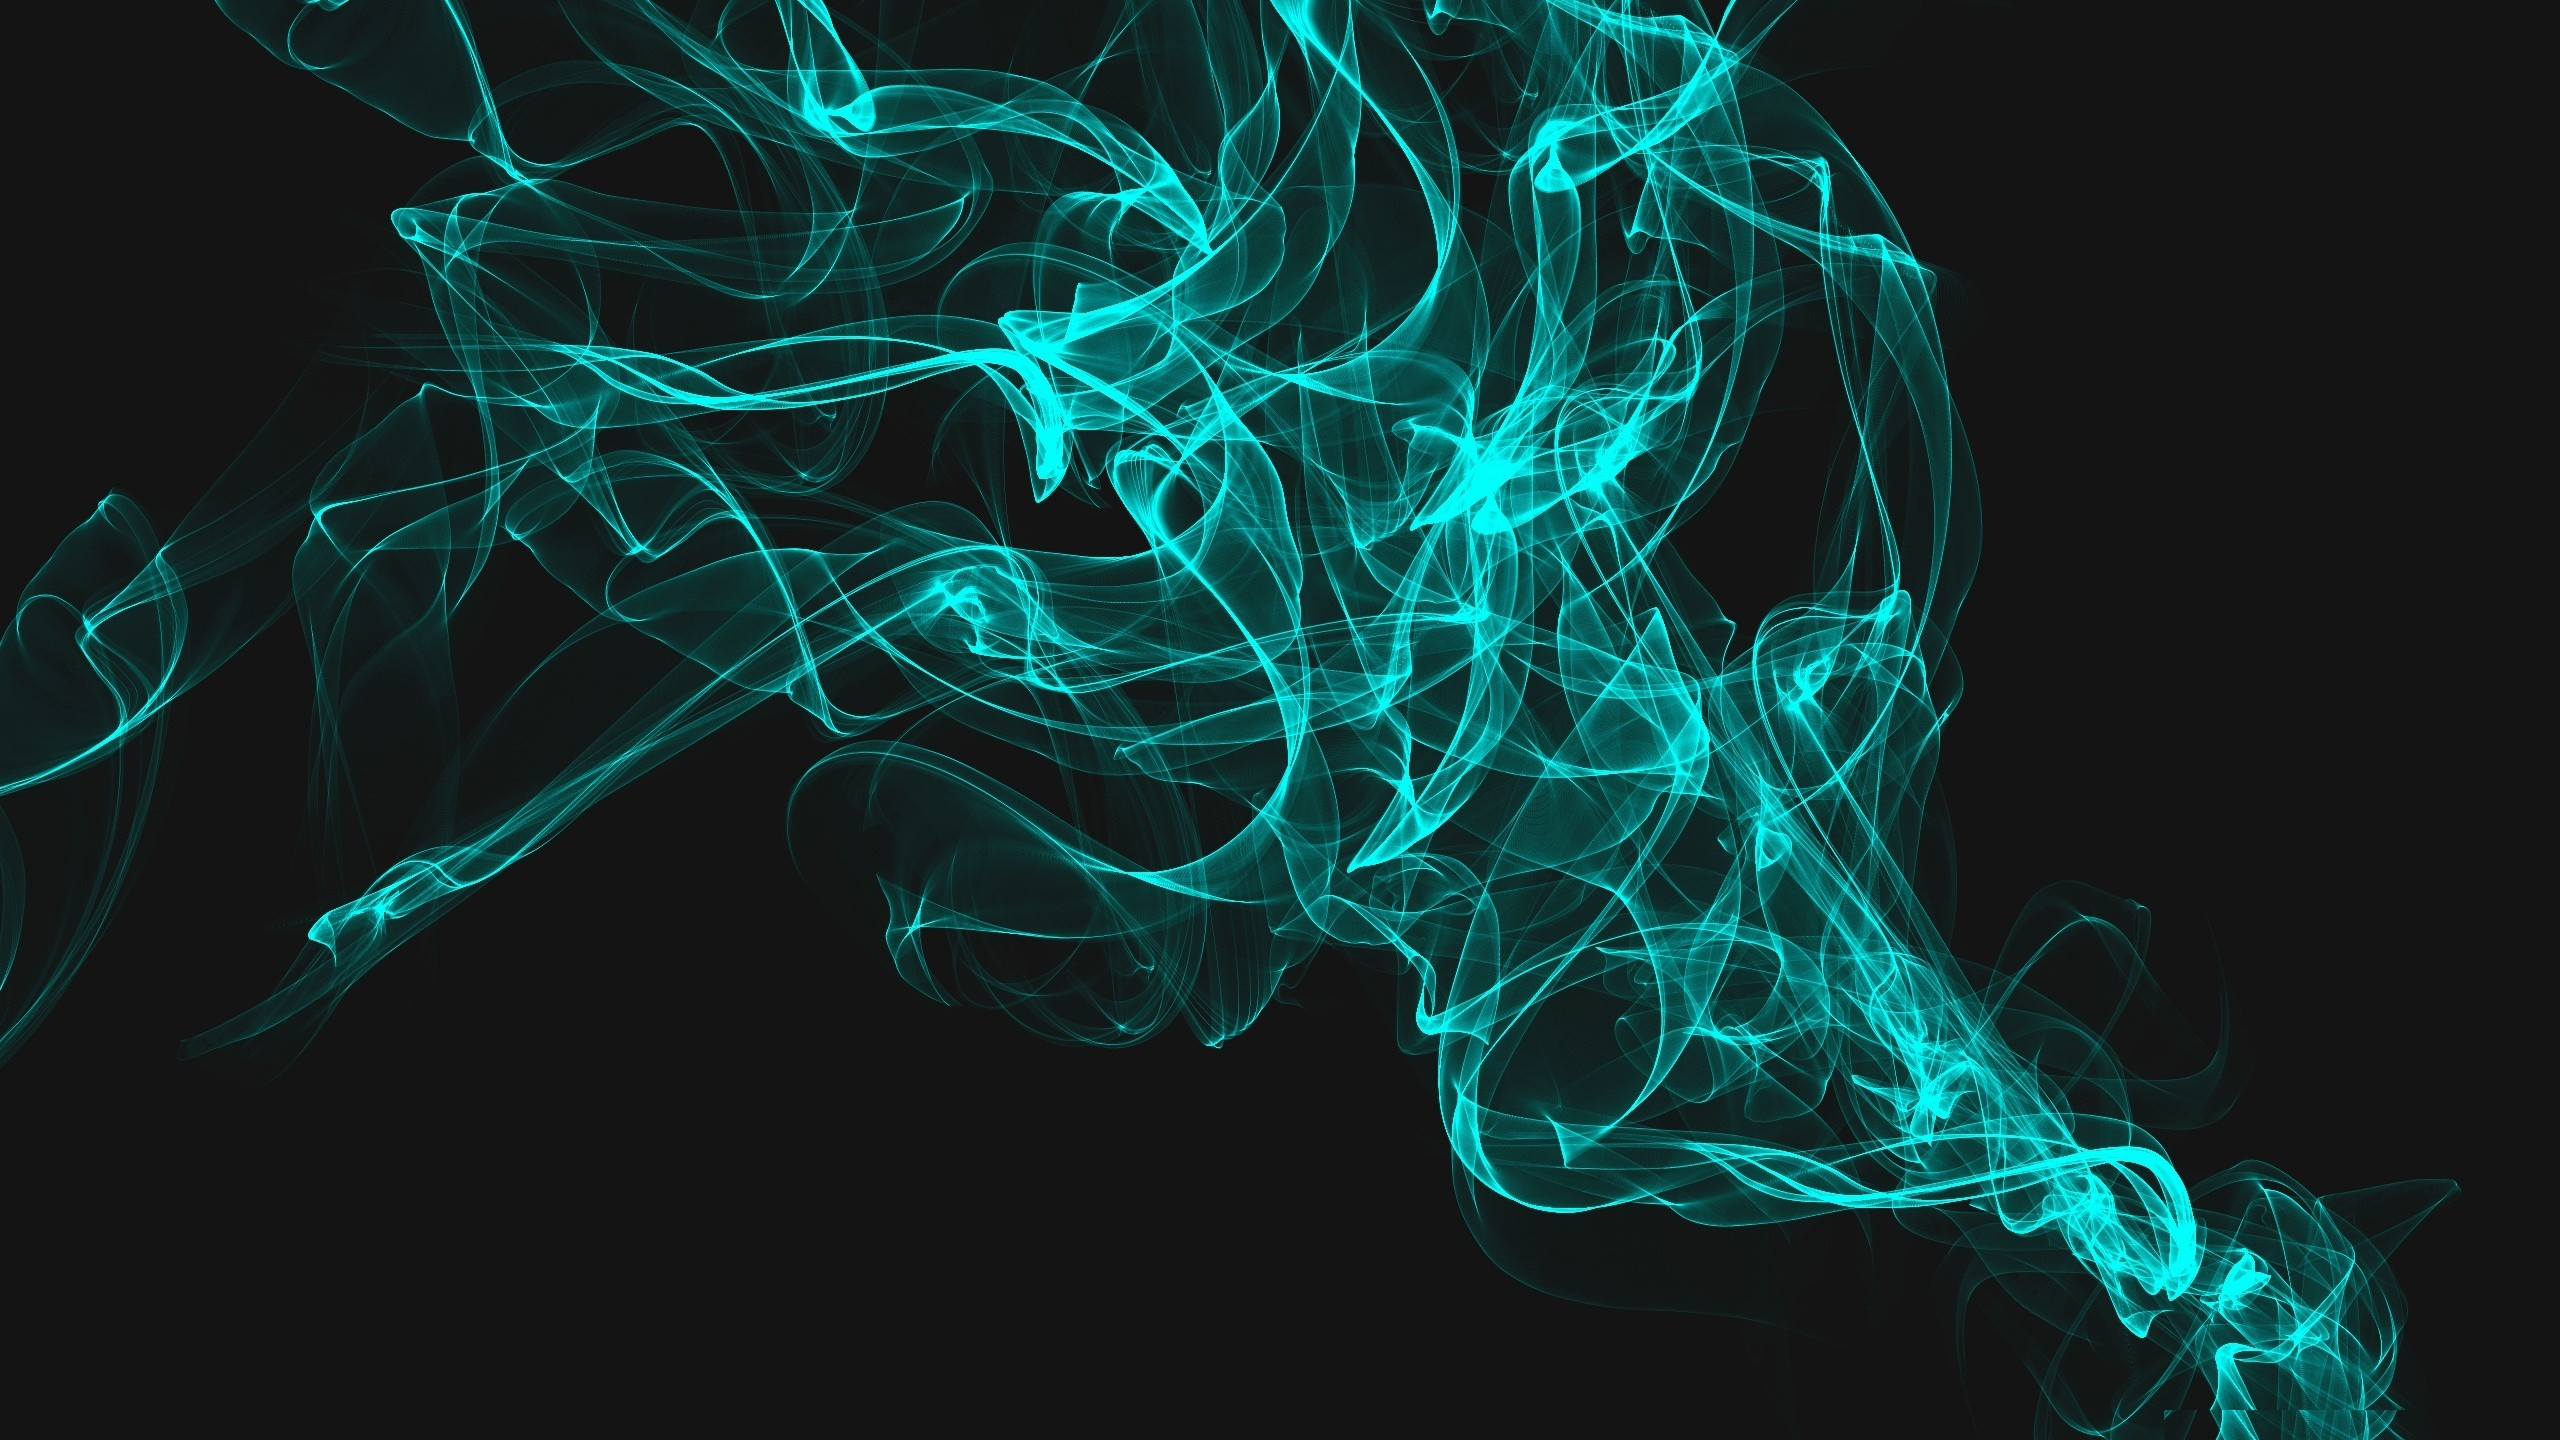 abstract blue dark smoke digital art wallpaper background 2560x1440